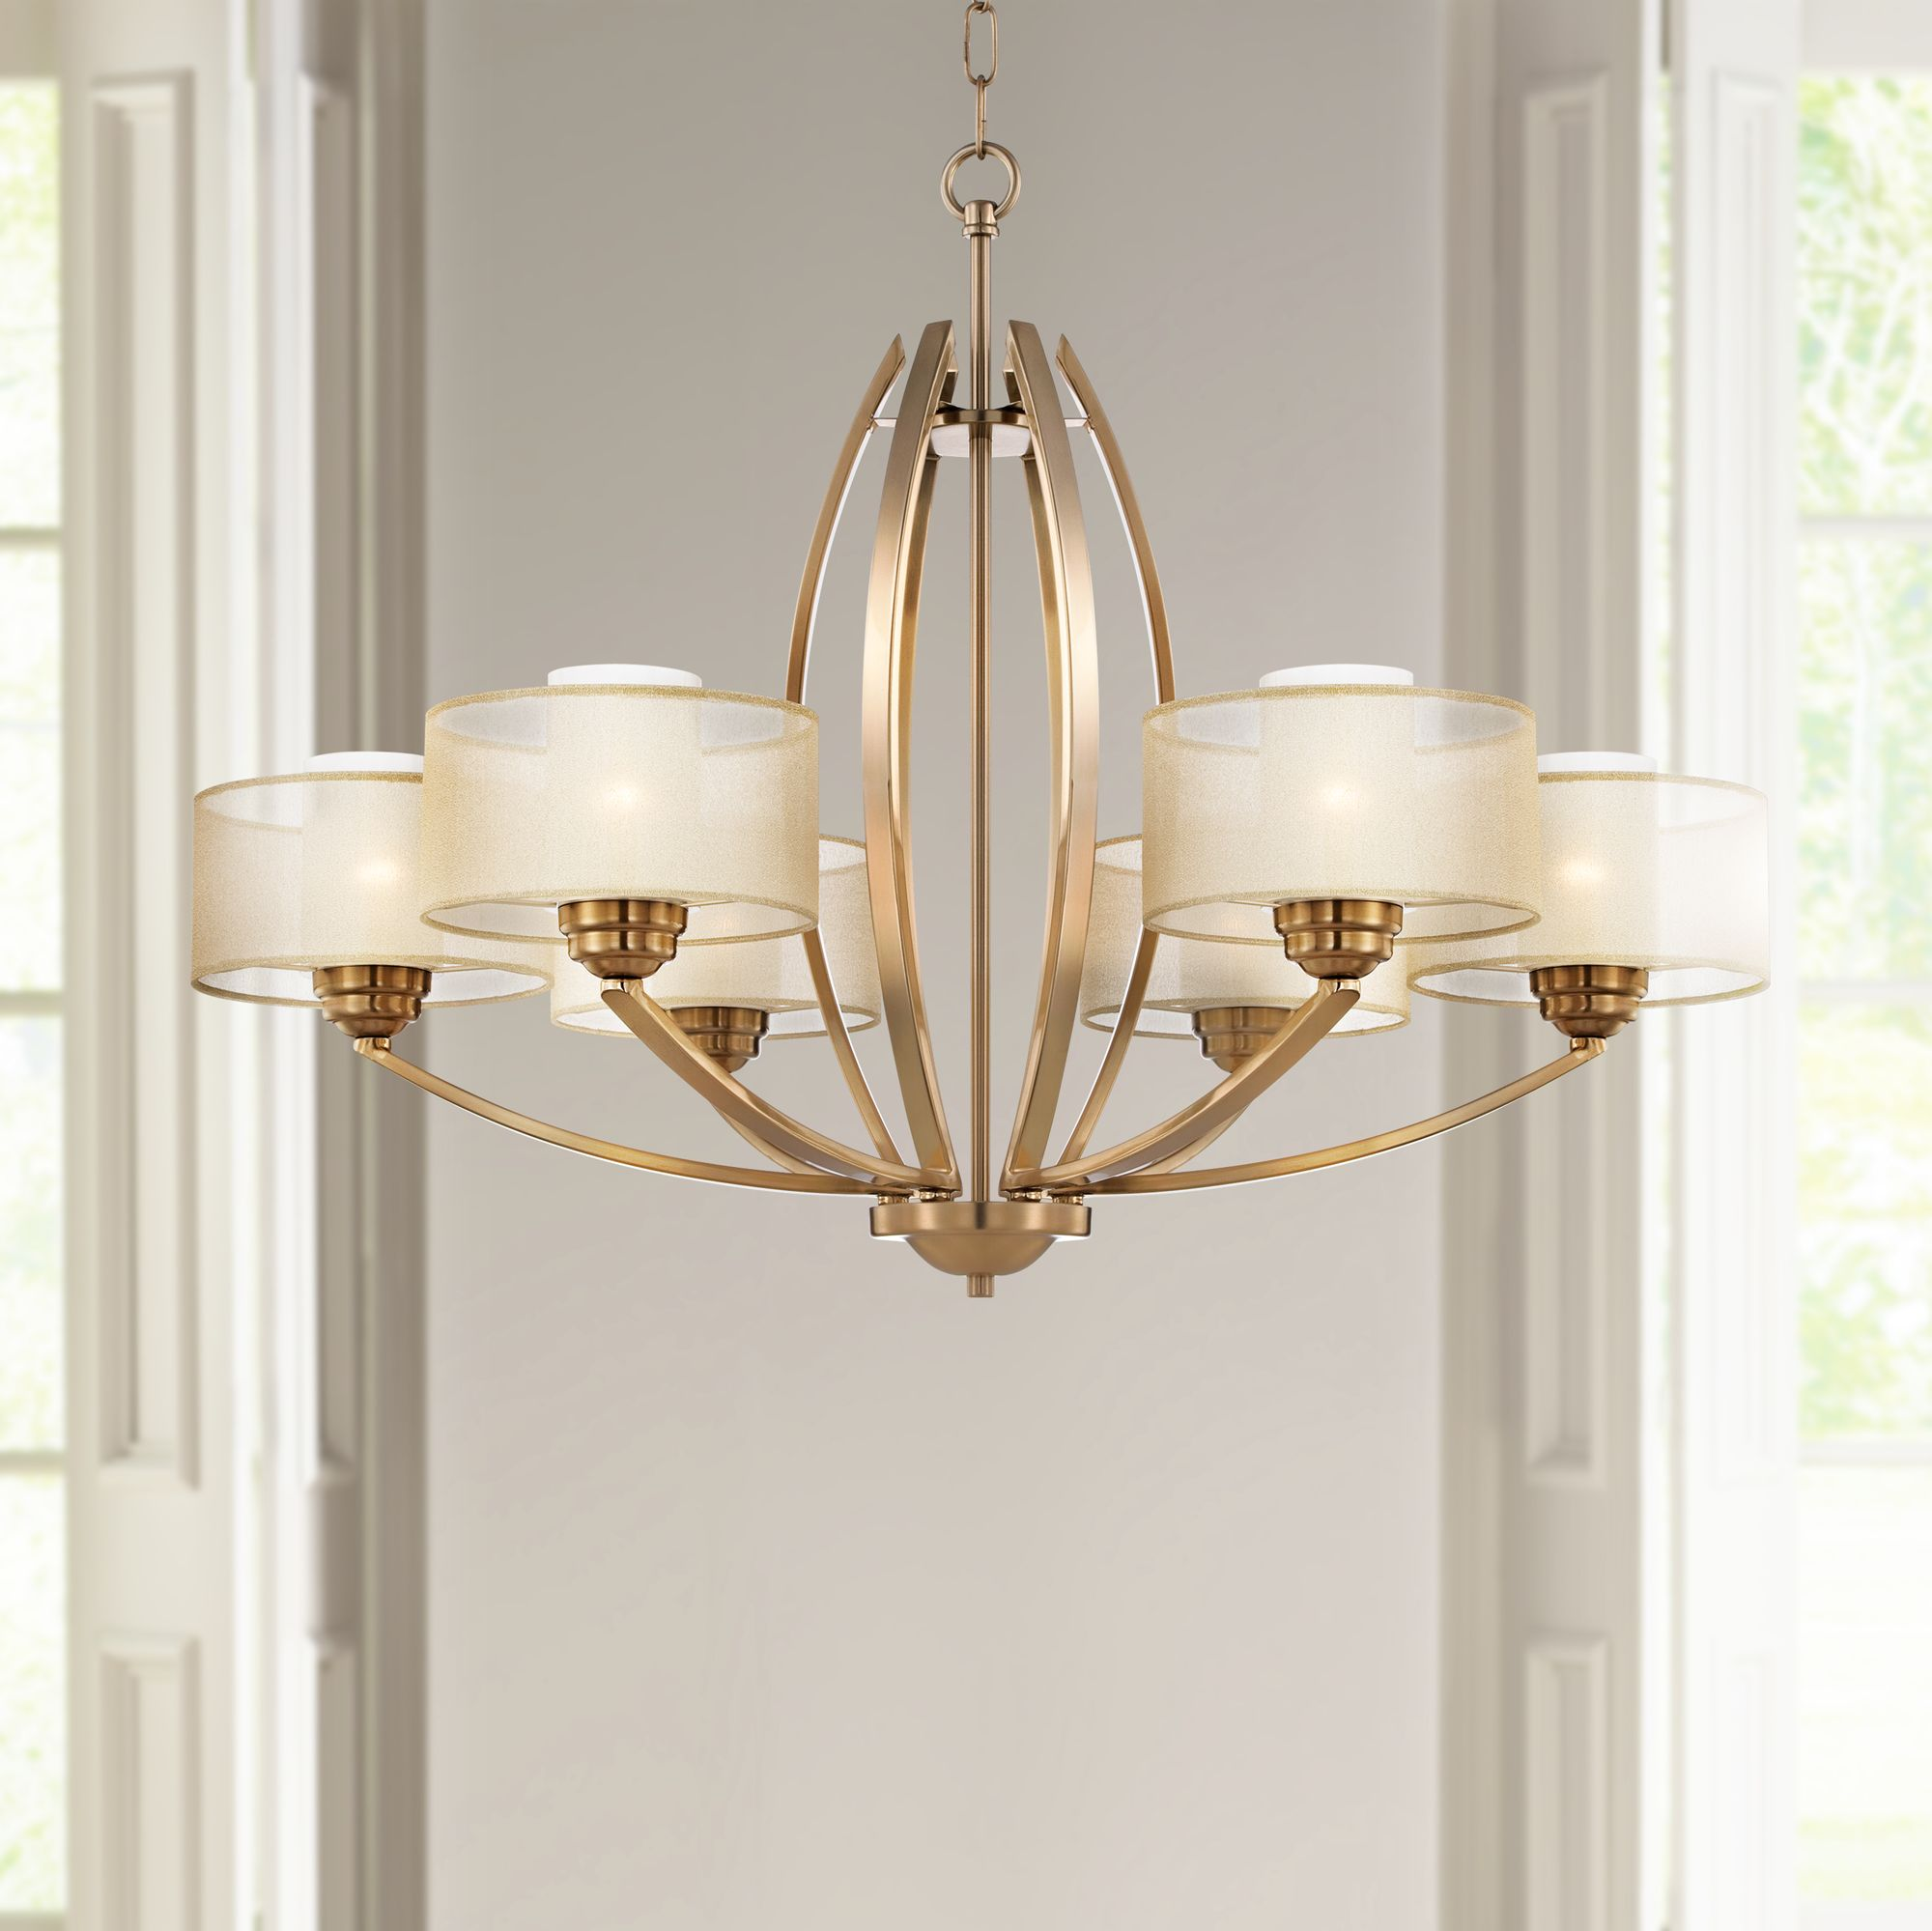 dining room chandeliers casual formal and more lamps plus rh lampsplus com Home Depot Dining Room Chandeliers Home Depot Dining Room Chandeliers